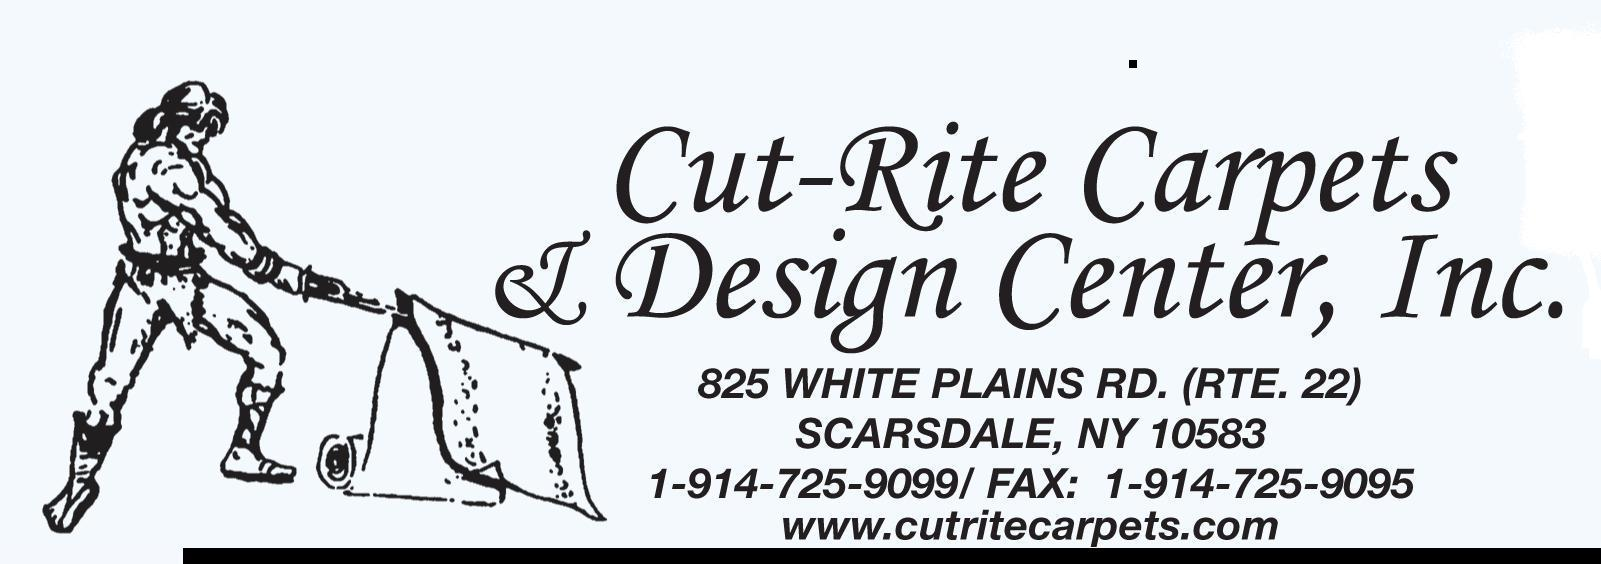 Cut Rite Carpets & Design Center - Scarsdale, NY